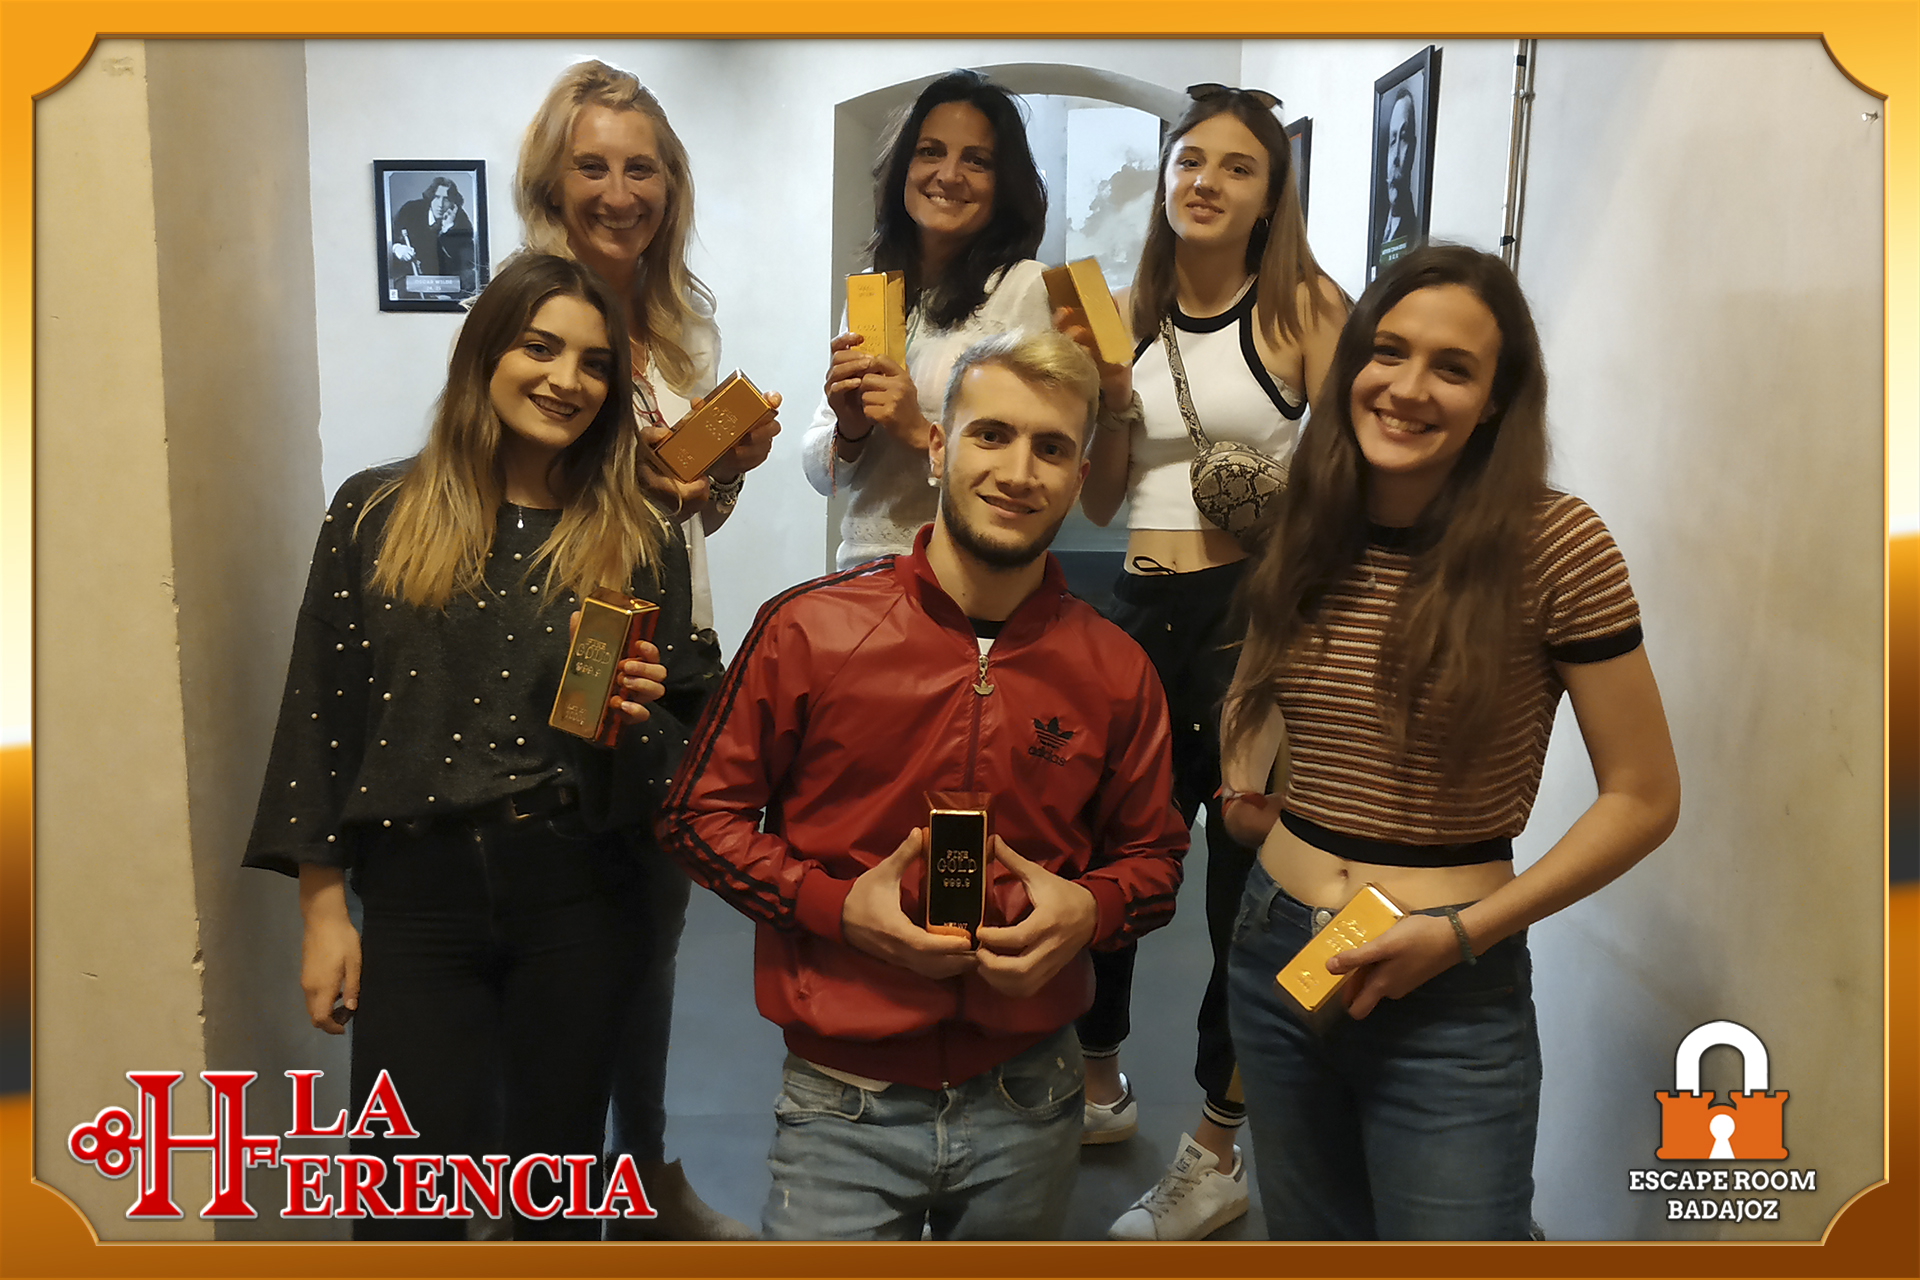 Familia-escape-room-badajoz